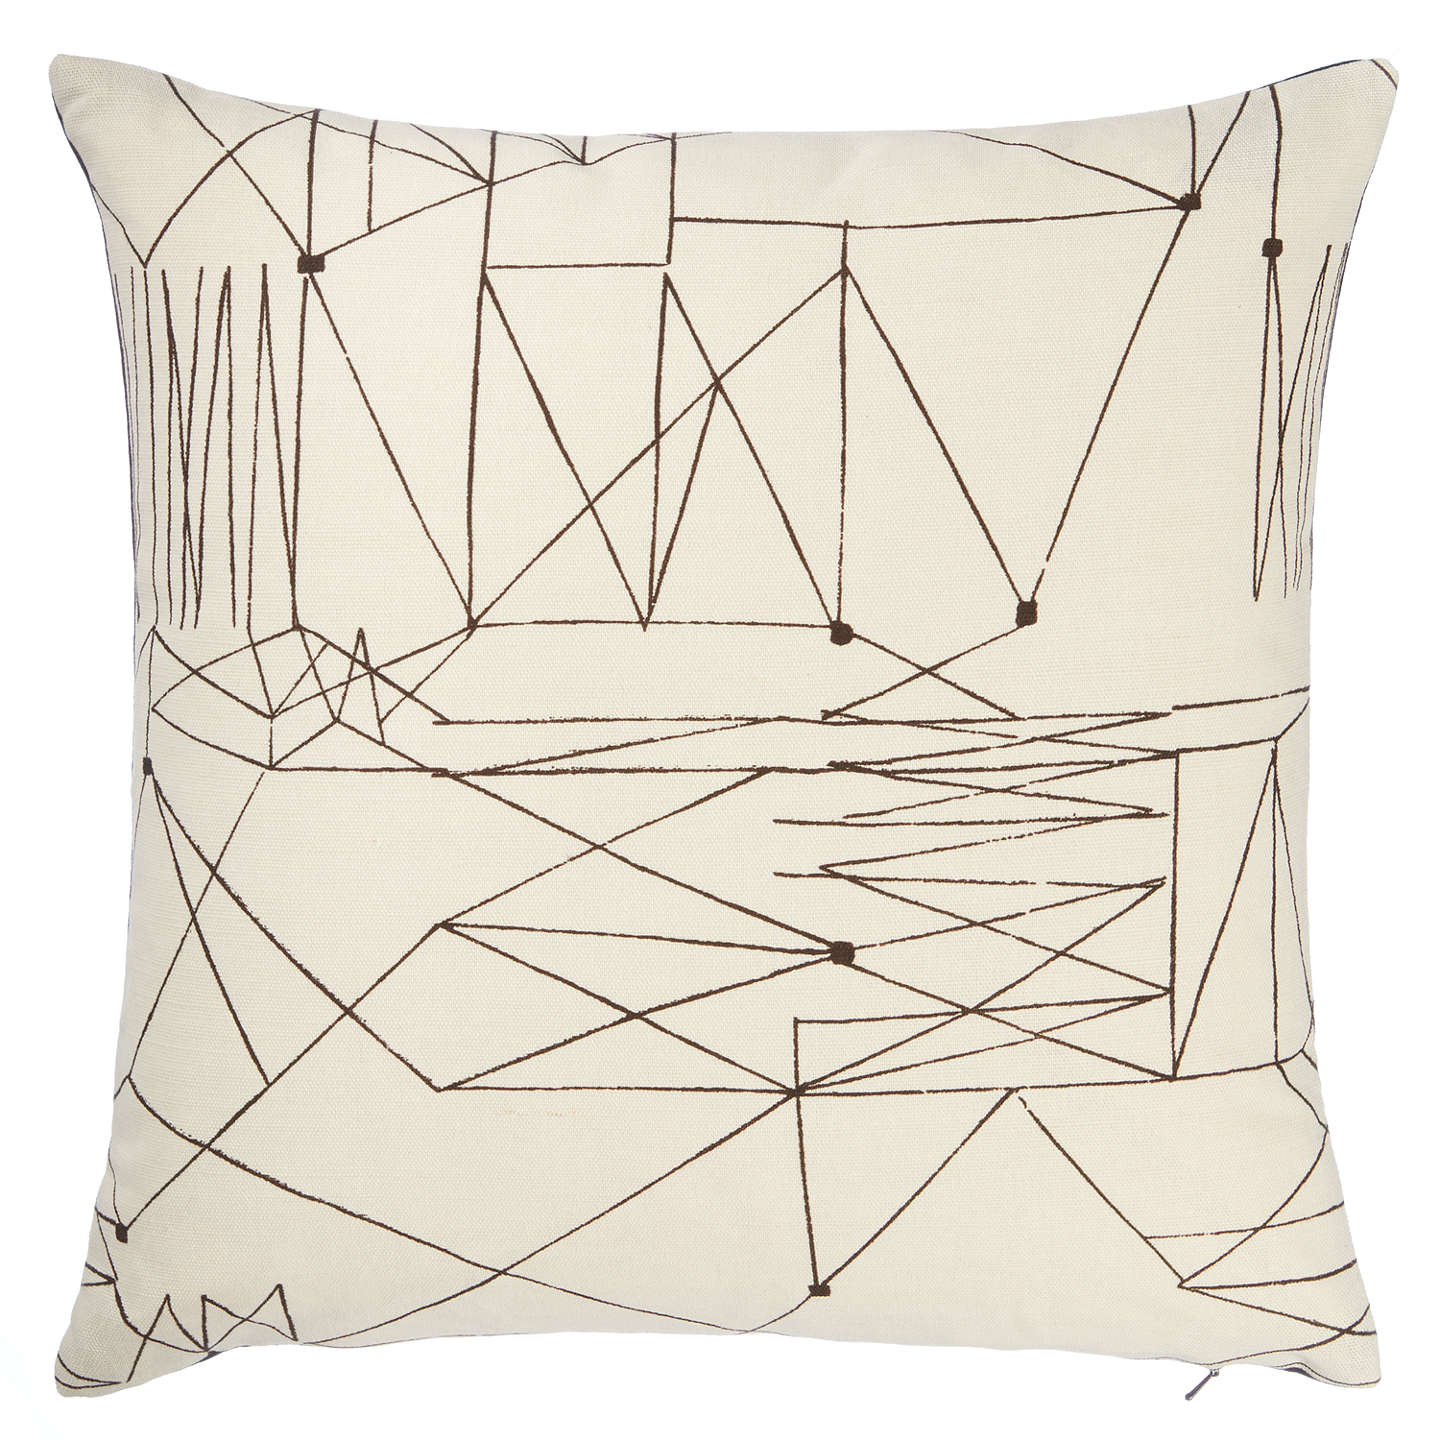 BuyLucienne Day Graphica Cushion, Black / White Online at johnlewis.com